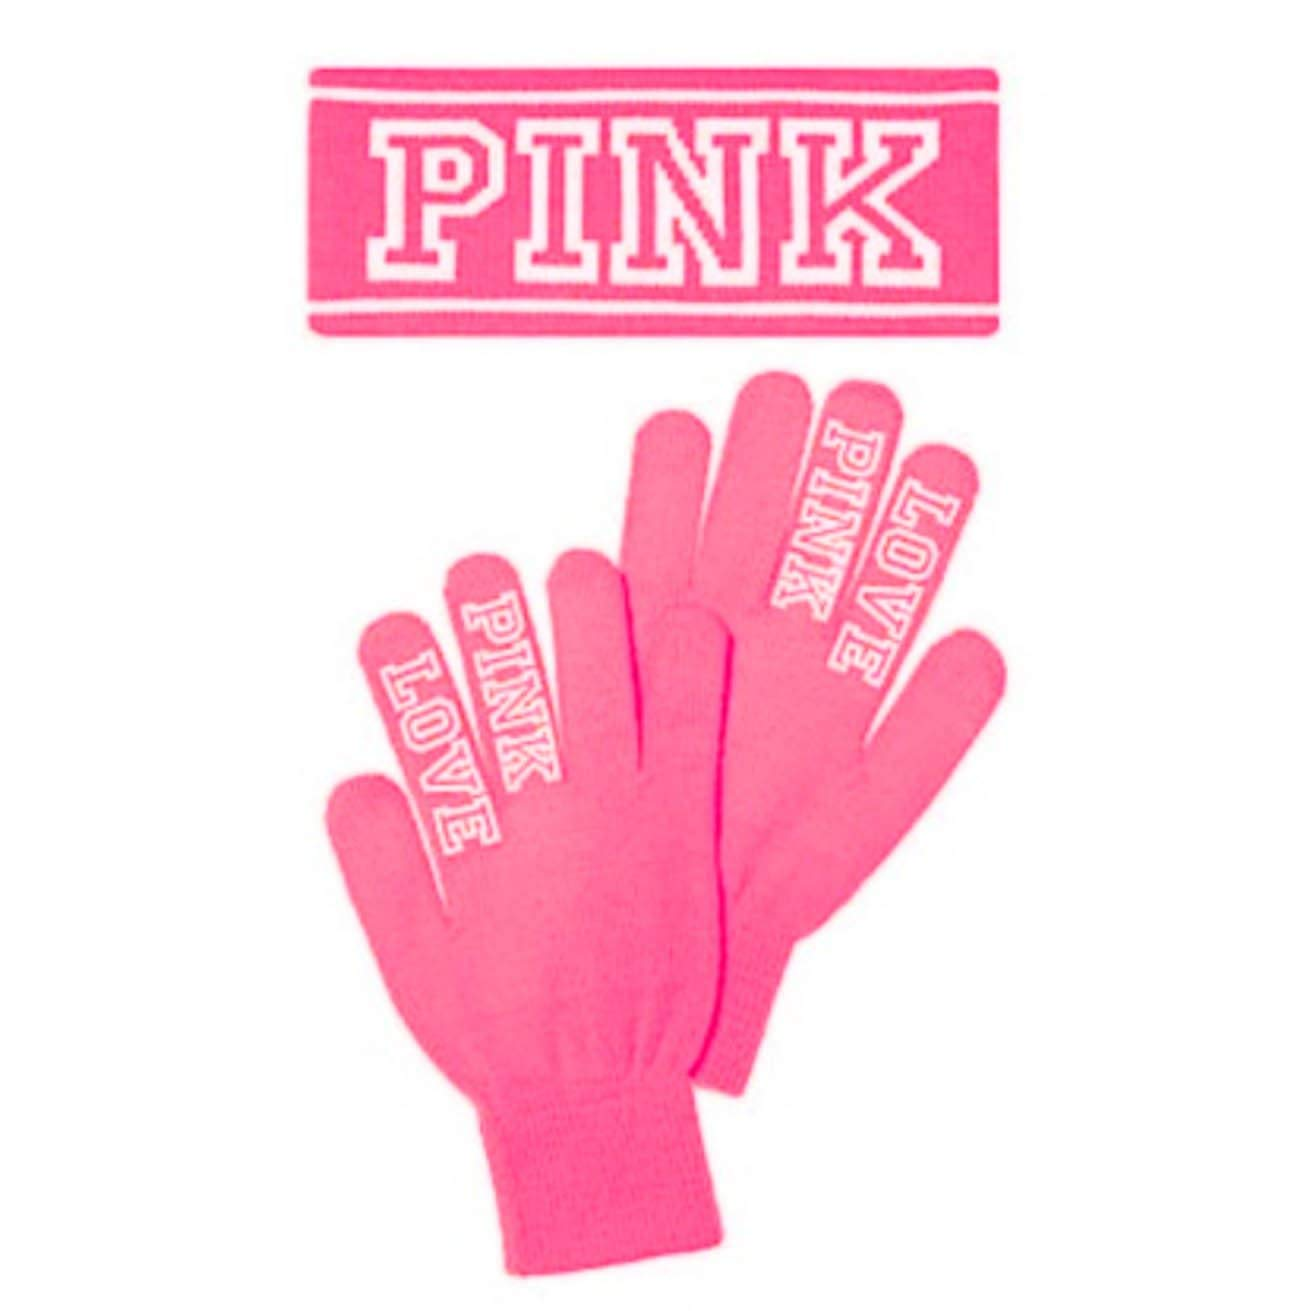 New! Victoria's Secret Pink Knit Headband & Gloves Set - Neon Pink NWT